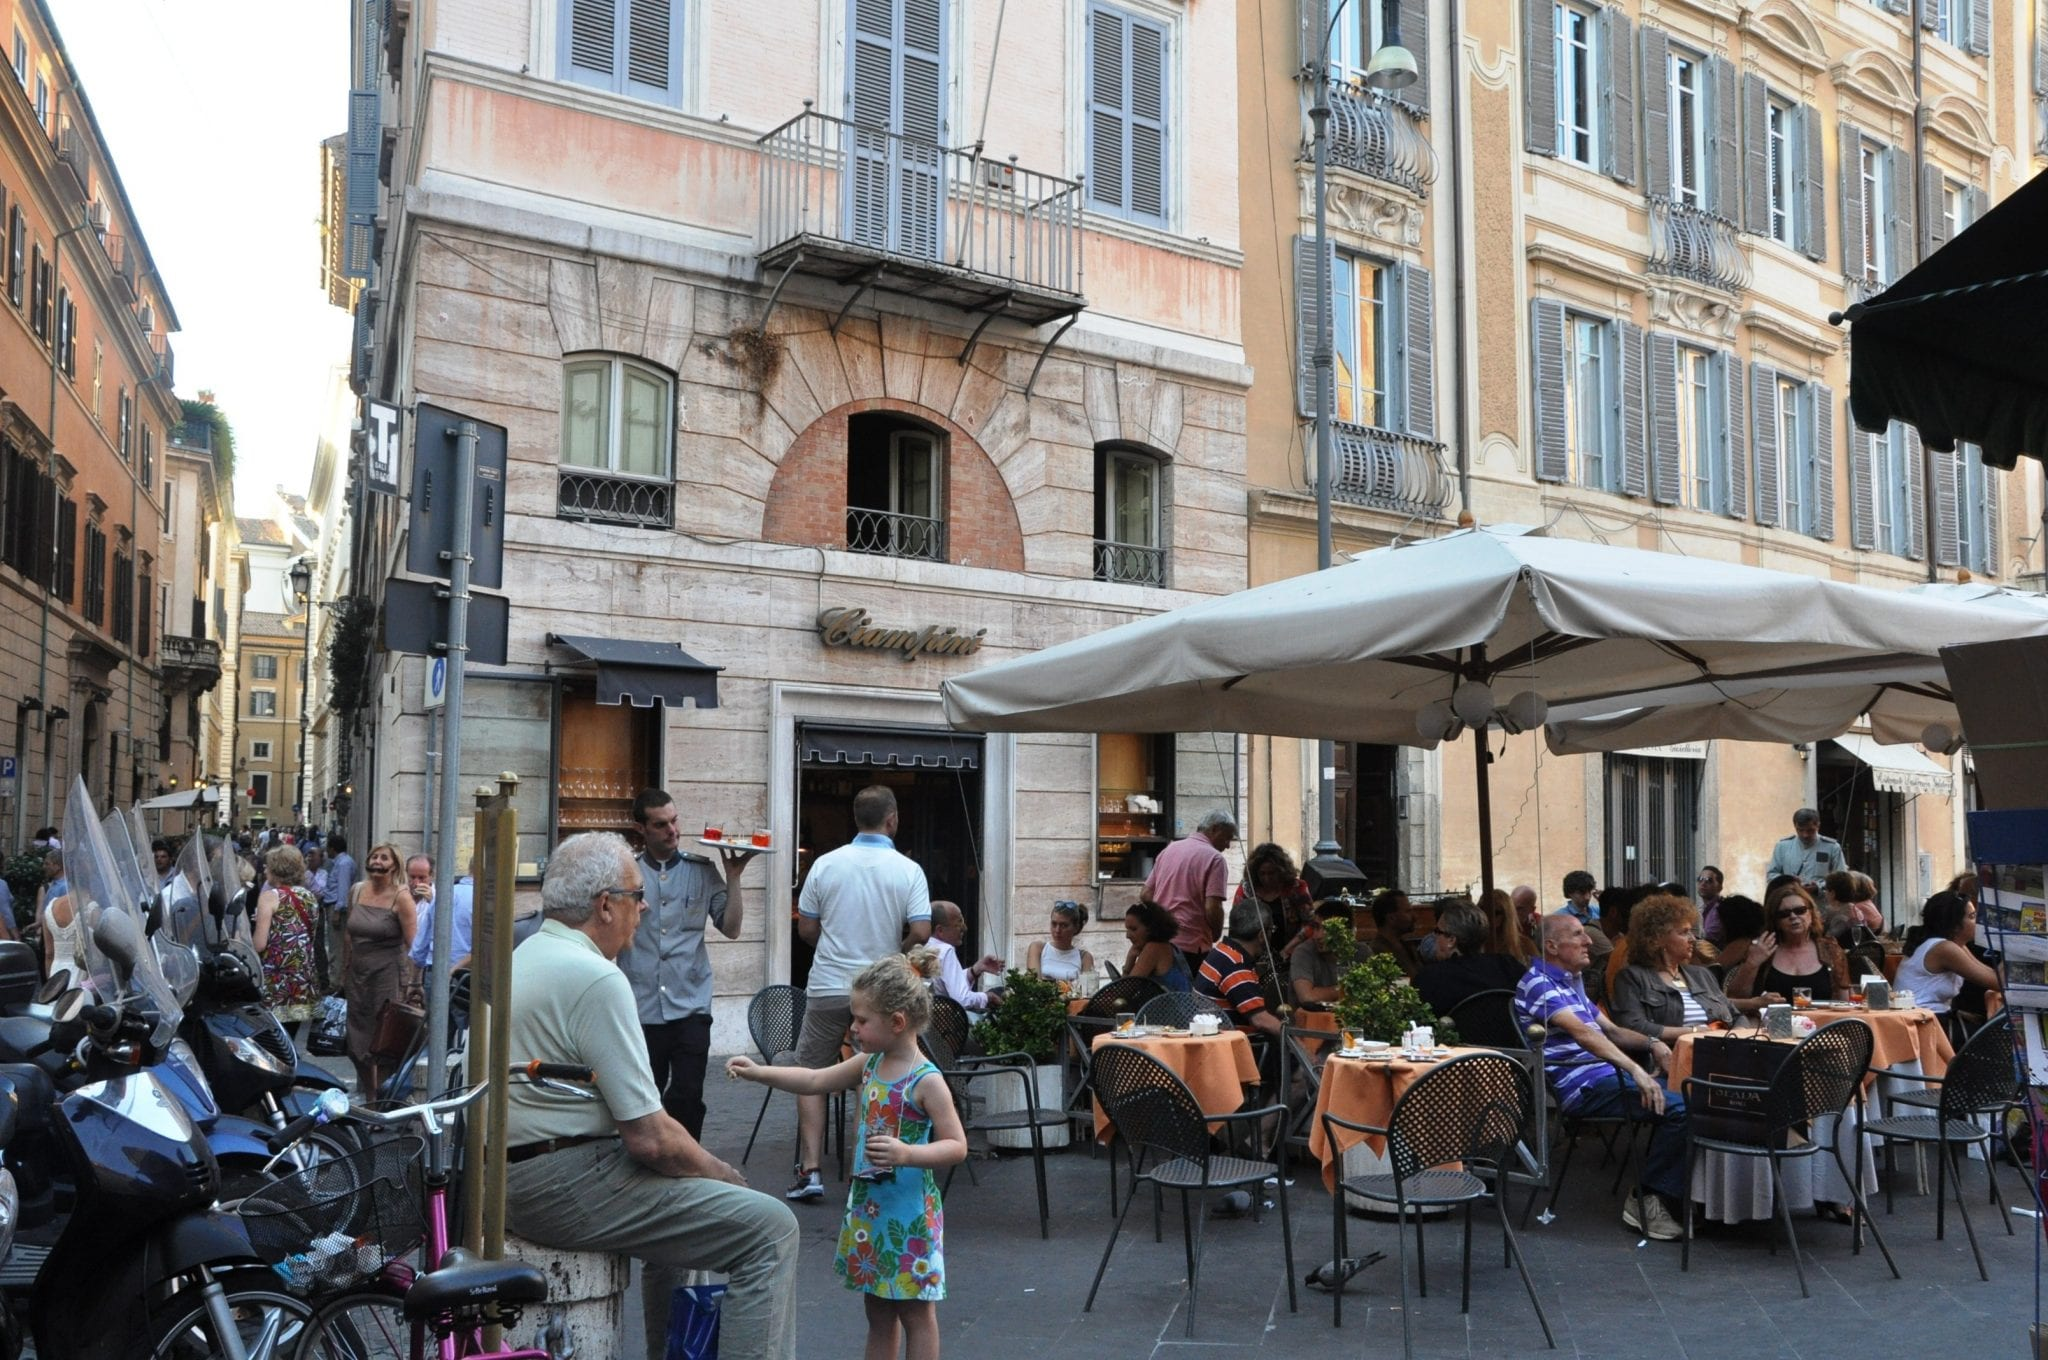 Get some of Italy's best gelato at this pretty piazza